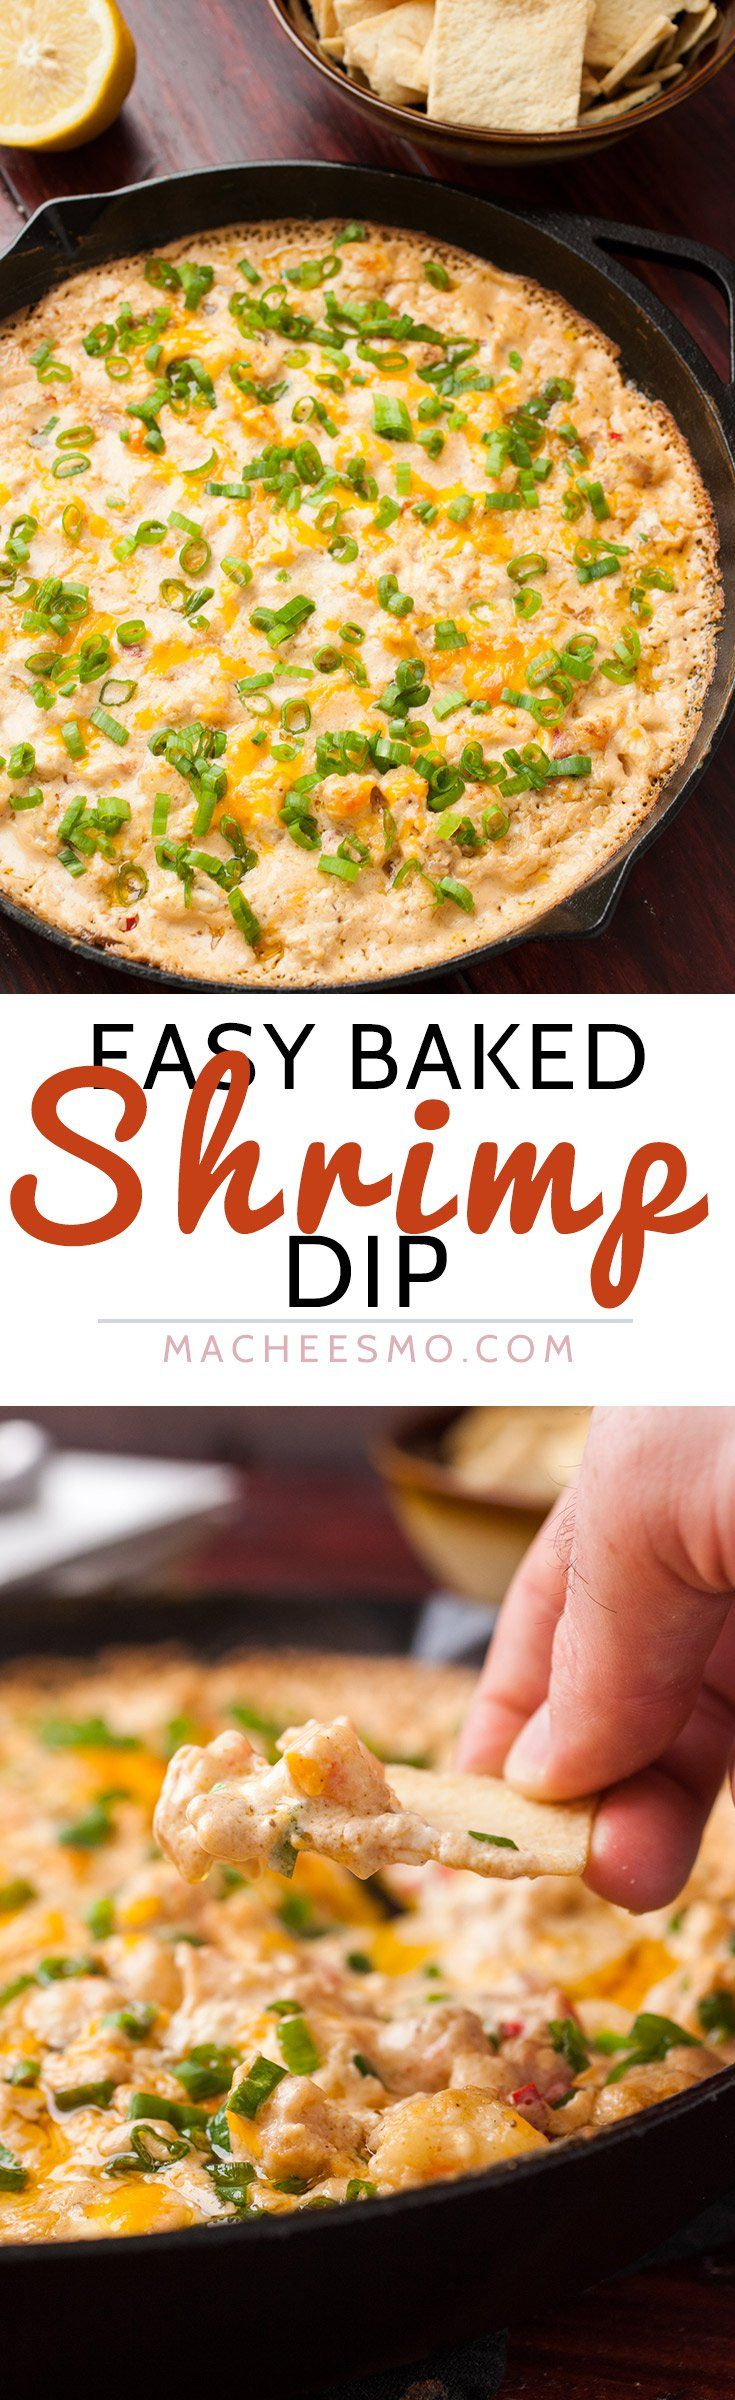 Easy Baked Shrimp Dip: This delicious and simple appetizer combines just a few ingredients and is a seafood lover's dream! All baked in a cast iron skillet!